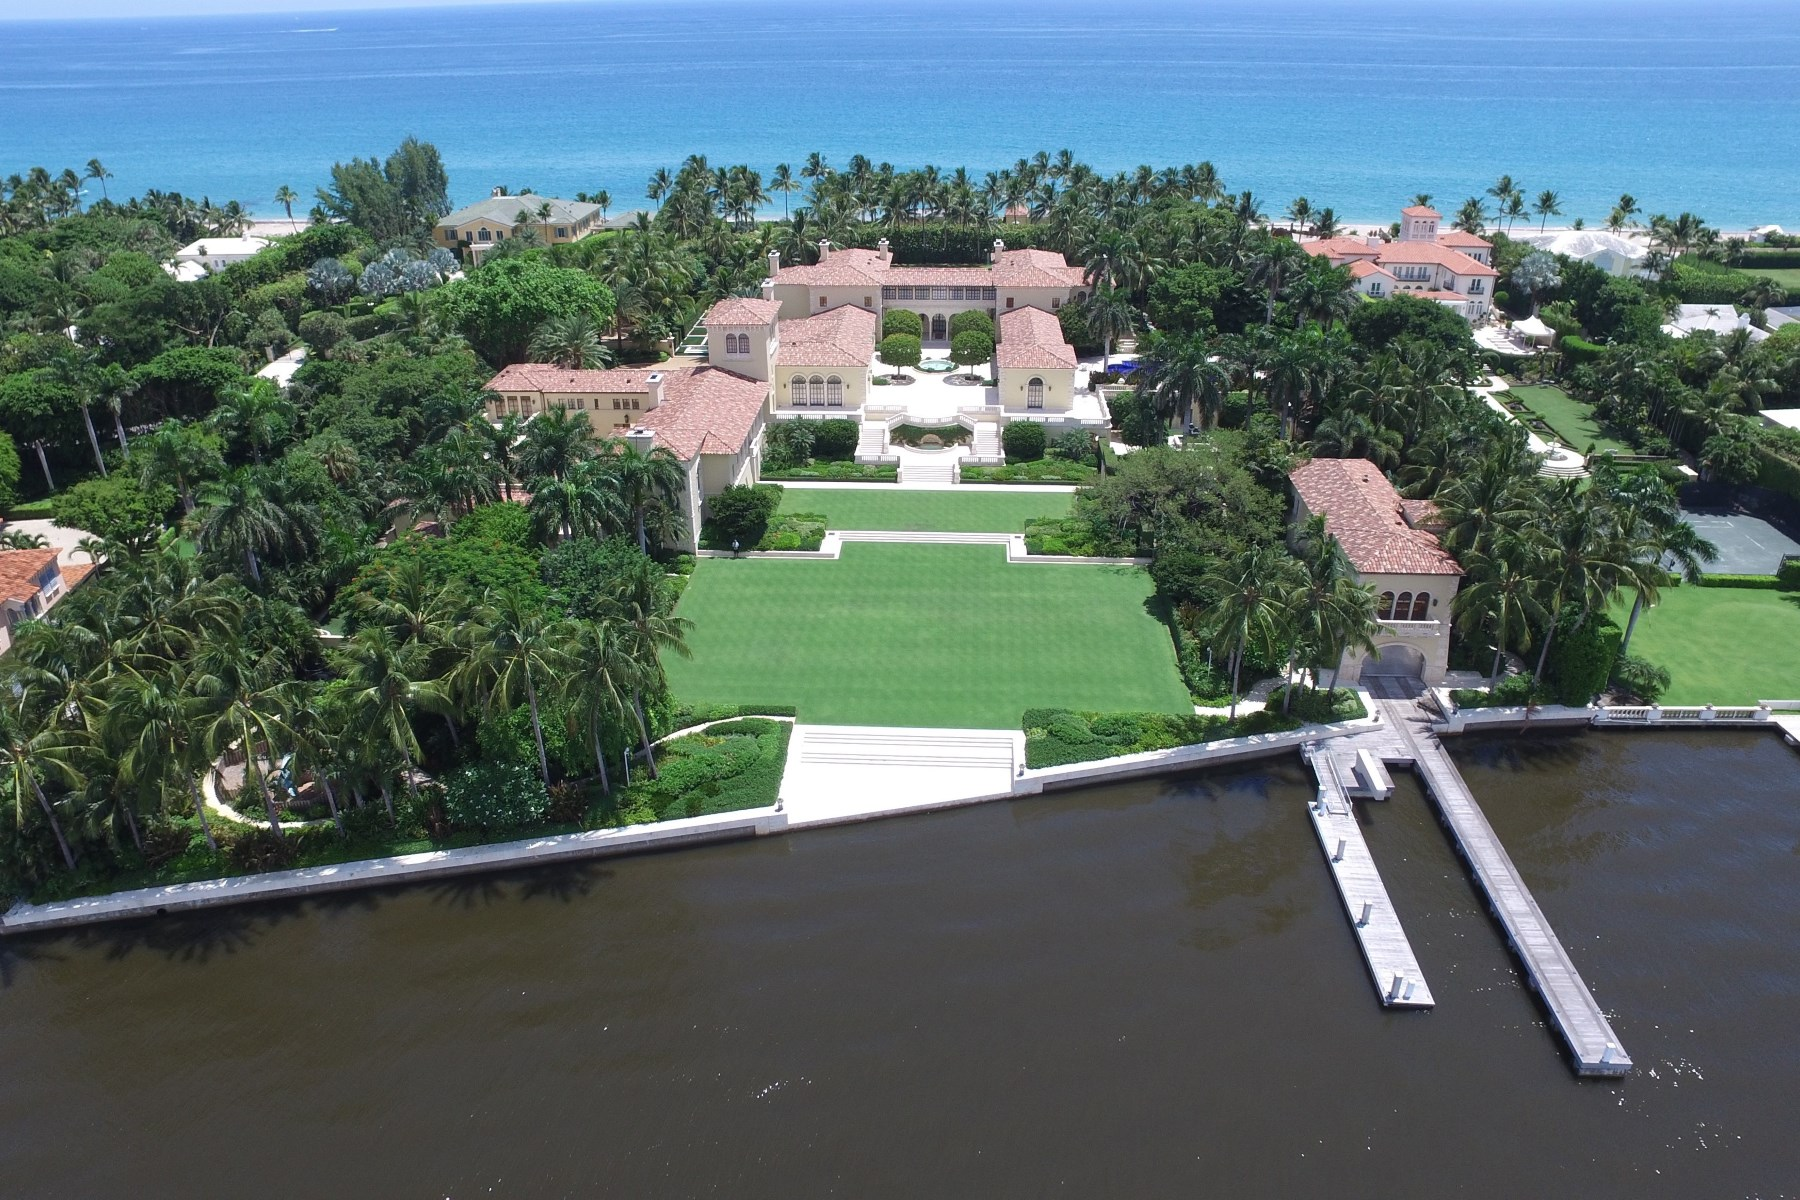 Maison unifamiliale pour l Vente à II Palmetto Estate Section, Palm Beach, Florida, 33480 États-Unis